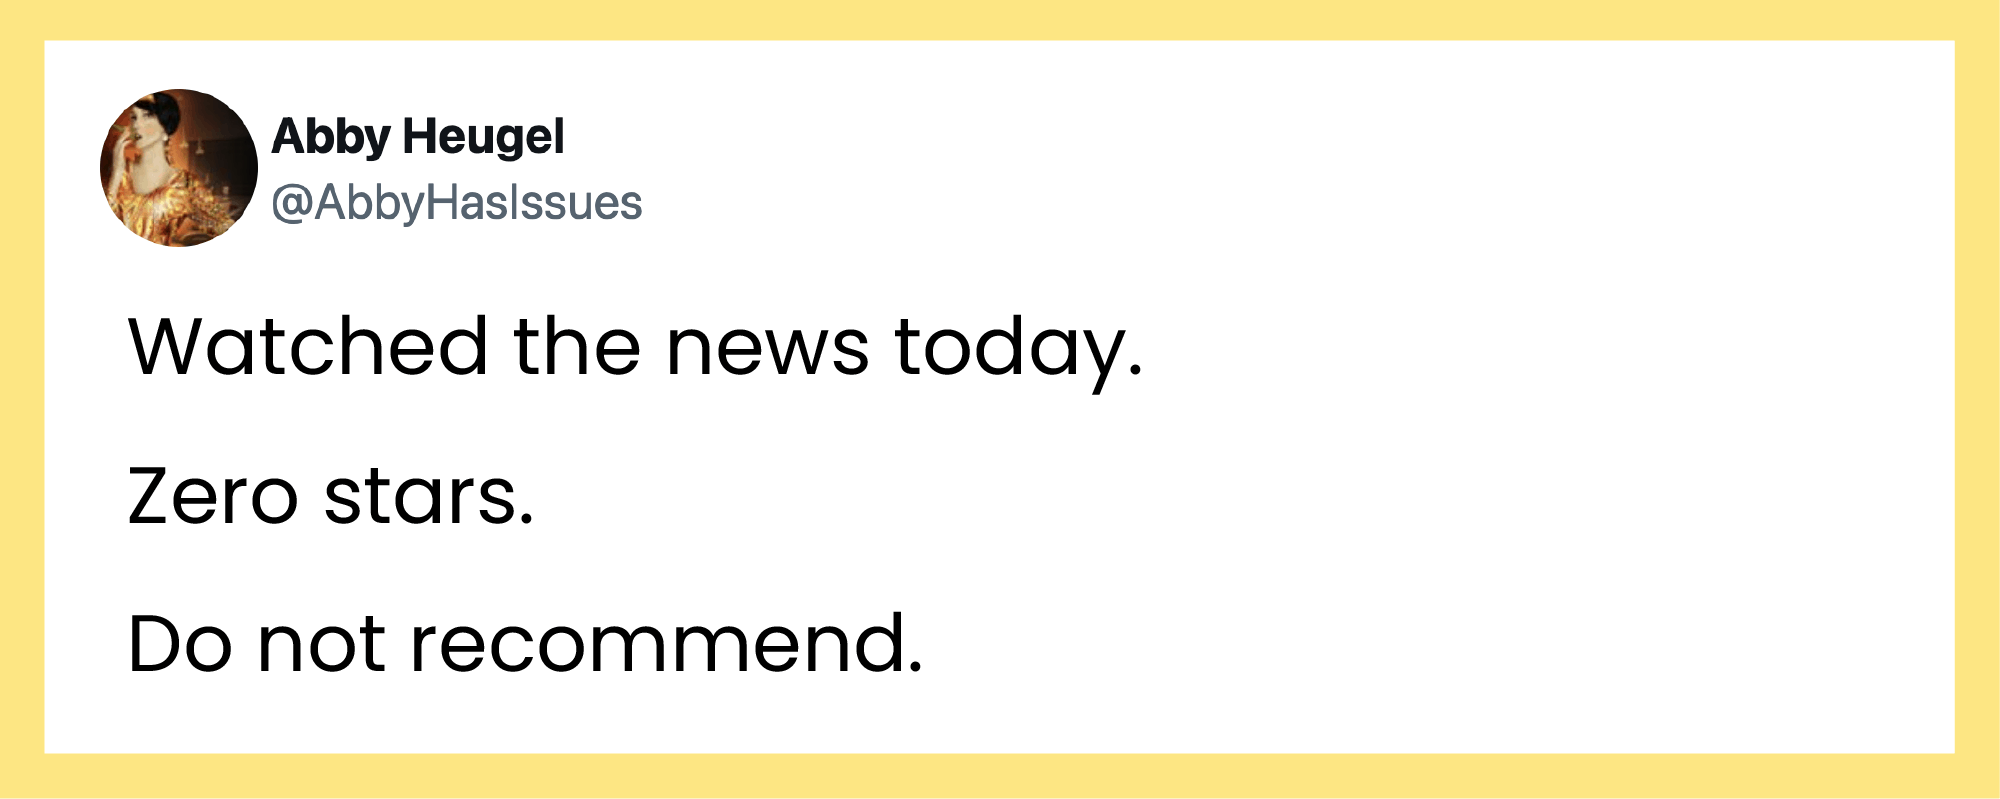 """Tweet: """"Watched the news today. Zero starts. Do not recommend."""""""